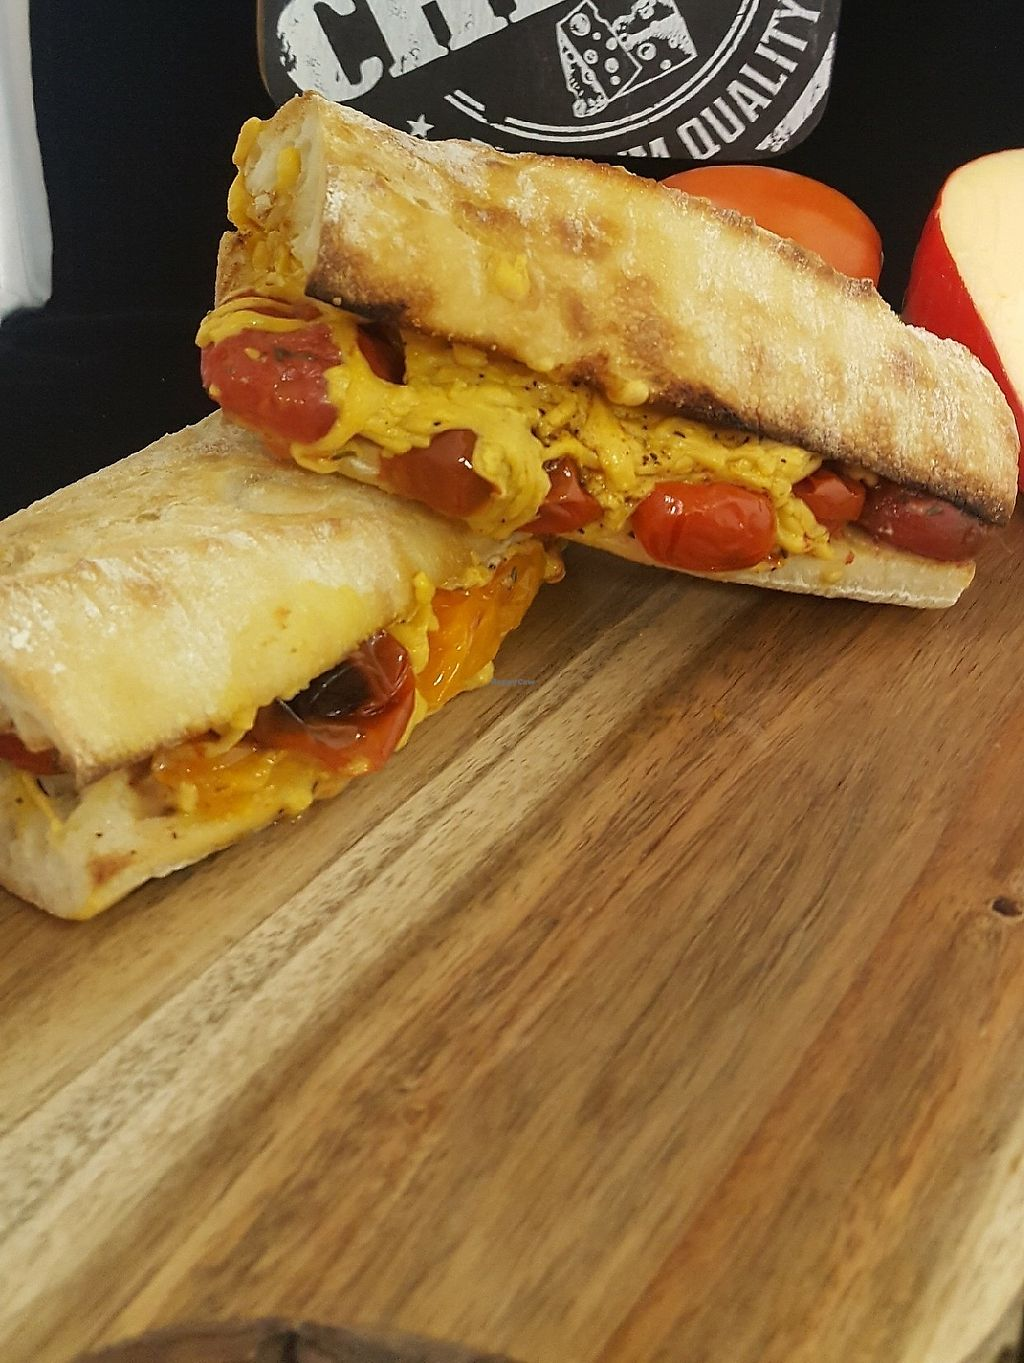 """Photo of Melted Co.  by <a href=""""/members/profile/KFurr"""">KFurr</a> <br/>Grandpas Amped Up Samich. Marinated tomatoes and Vegan cheddar. Awesome! <br/> March 21, 2018  - <a href='/contact/abuse/image/114733/374073'>Report</a>"""